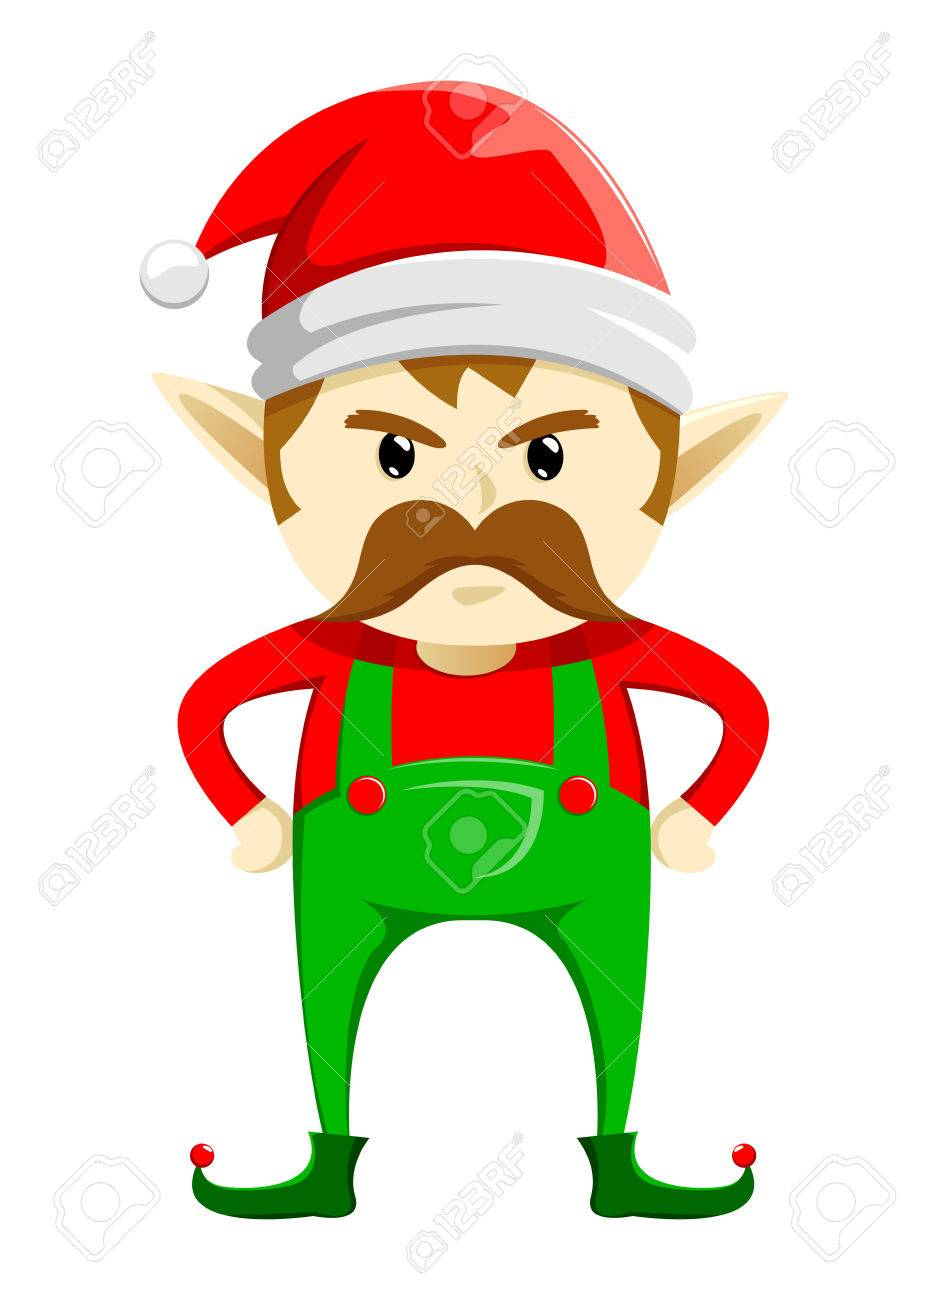 angry christmas elf with mustache vector illustration royalty